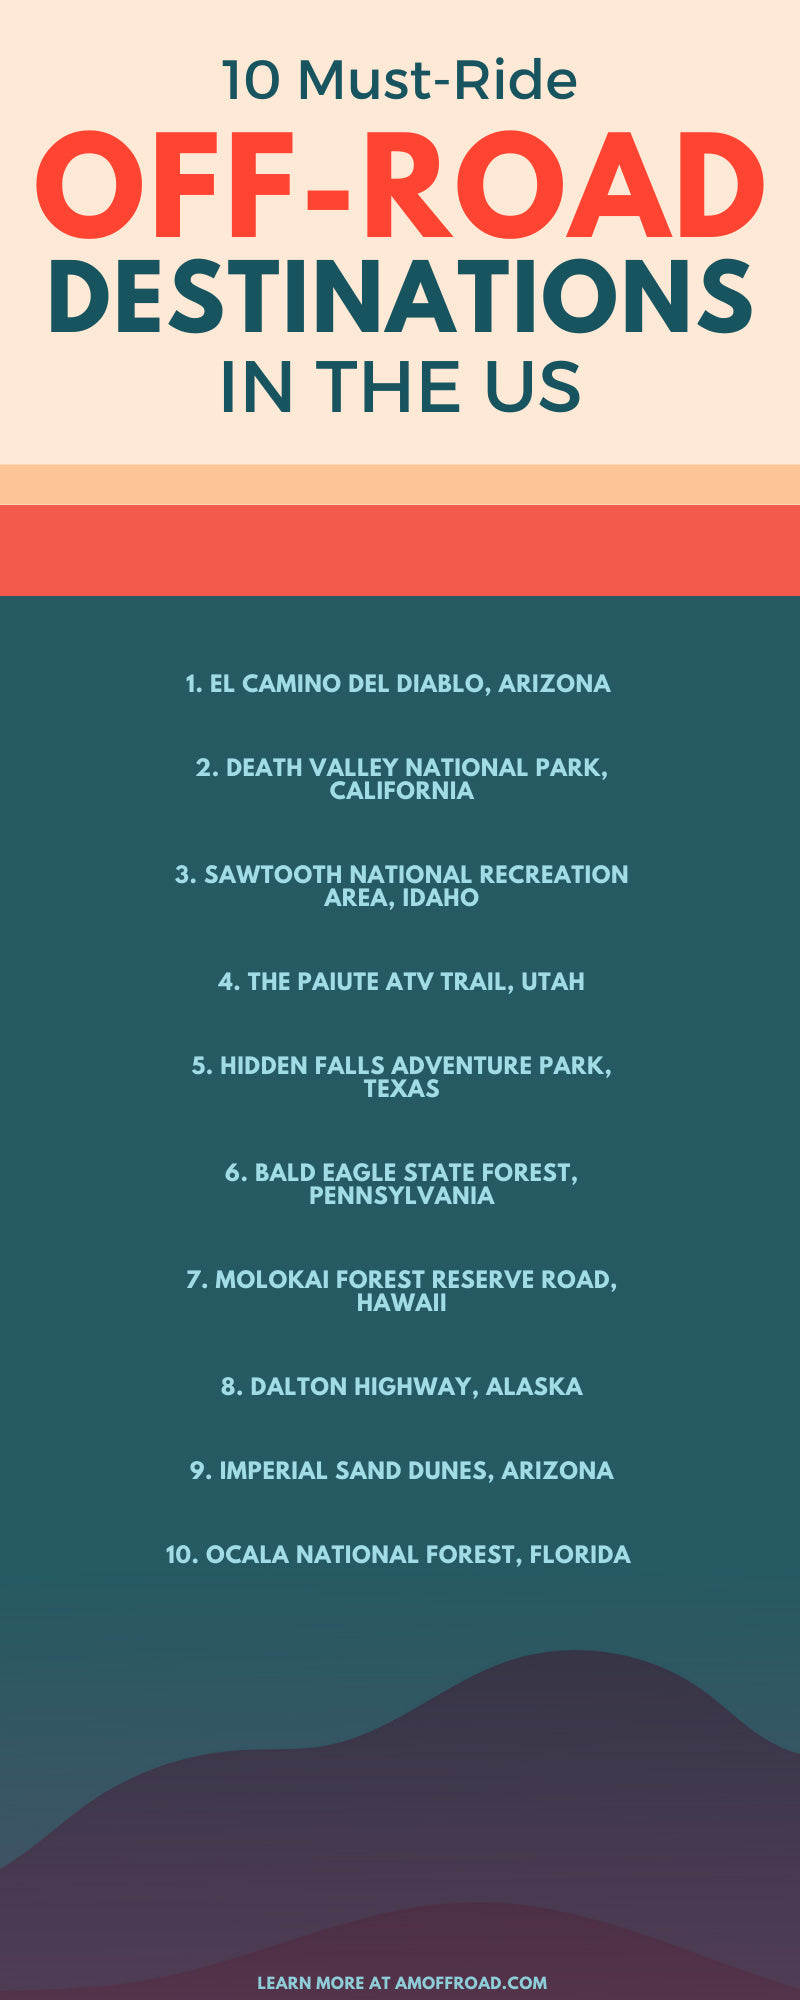 10 Must-Ride Off-Road Destinations in the US